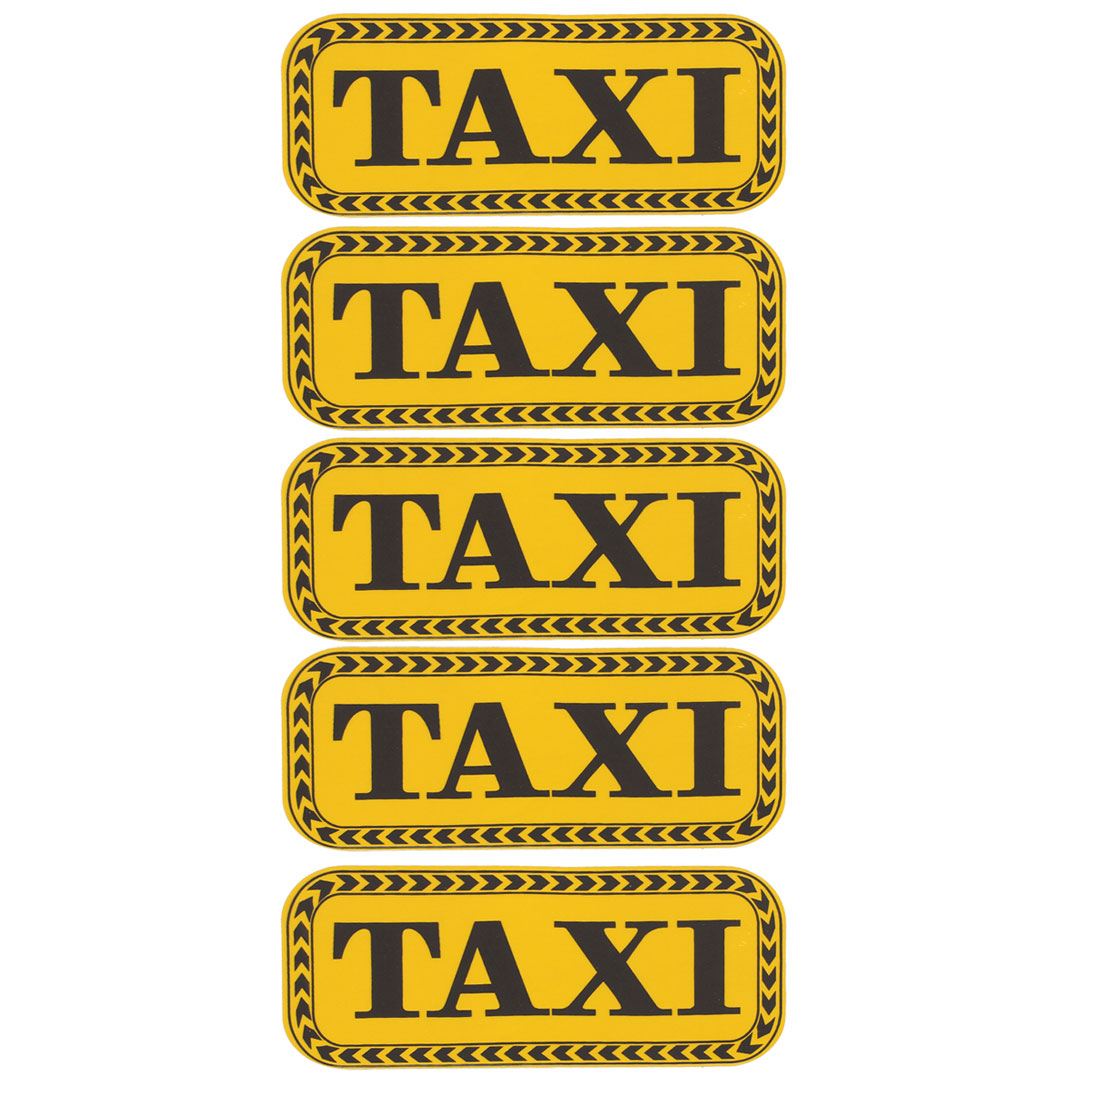 5 Pcs Reflective Adhesive Yellow Black TAXI Letters Style Sticker for Car